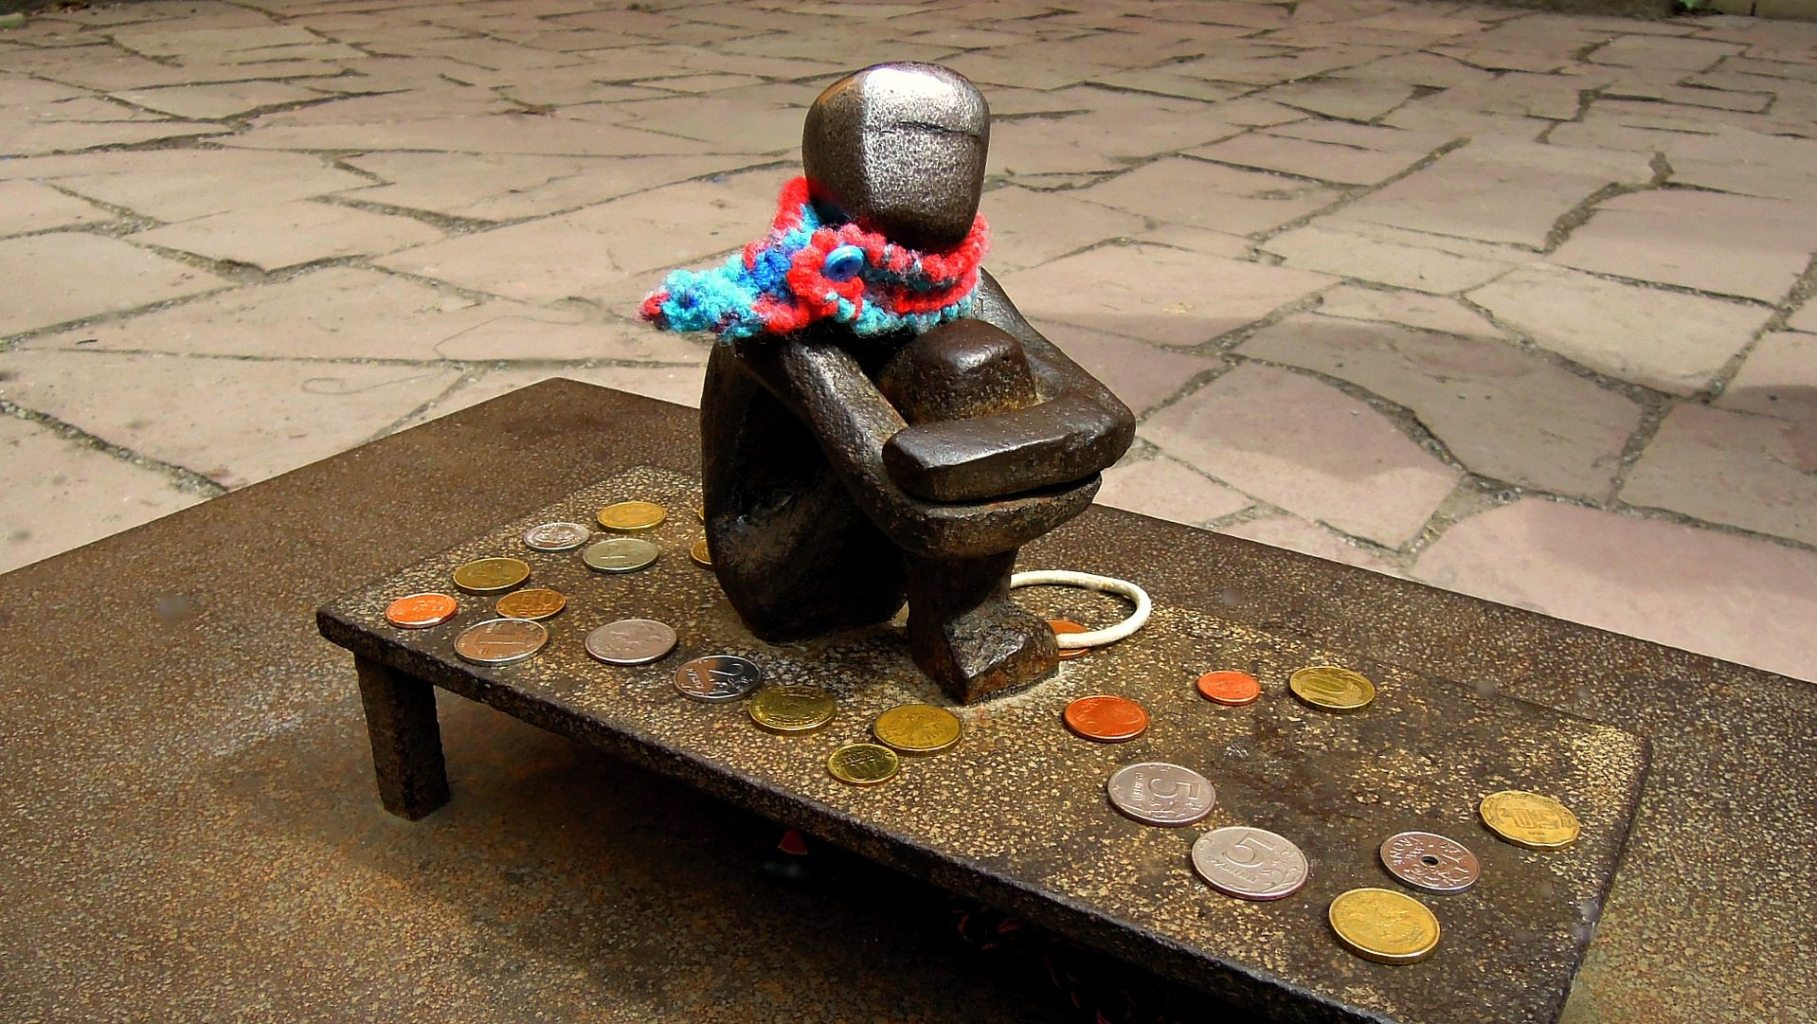 Image: Abstract sculpture of a boy sitting on a table